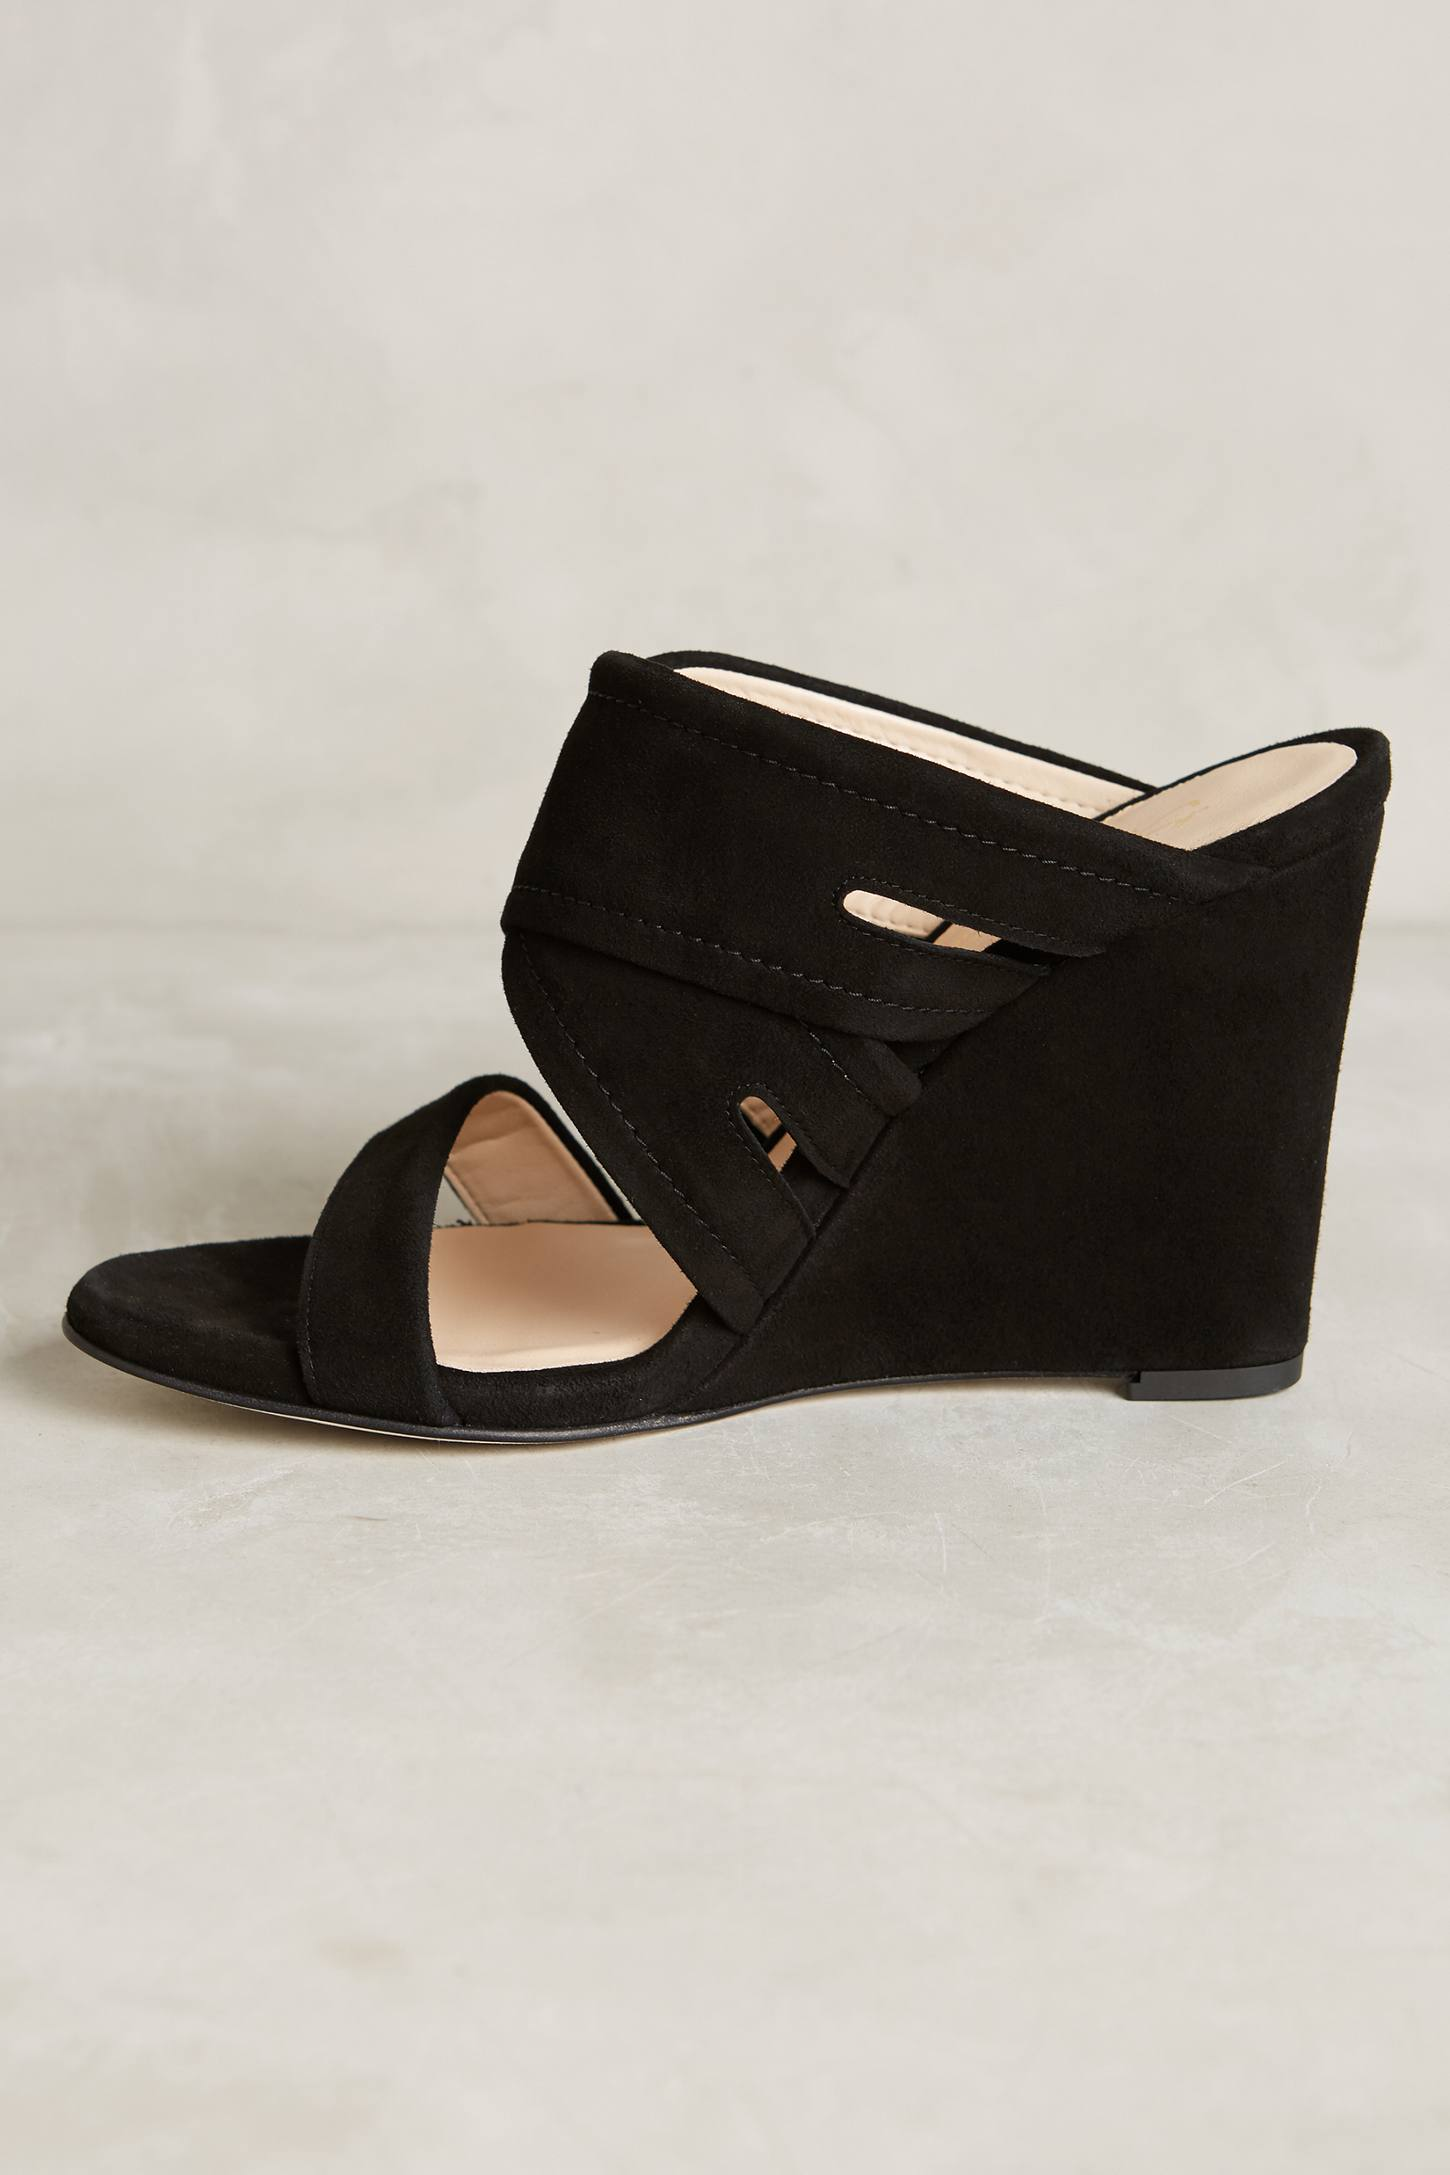 Slide View: 3: Miss Albright Escuro Wedges